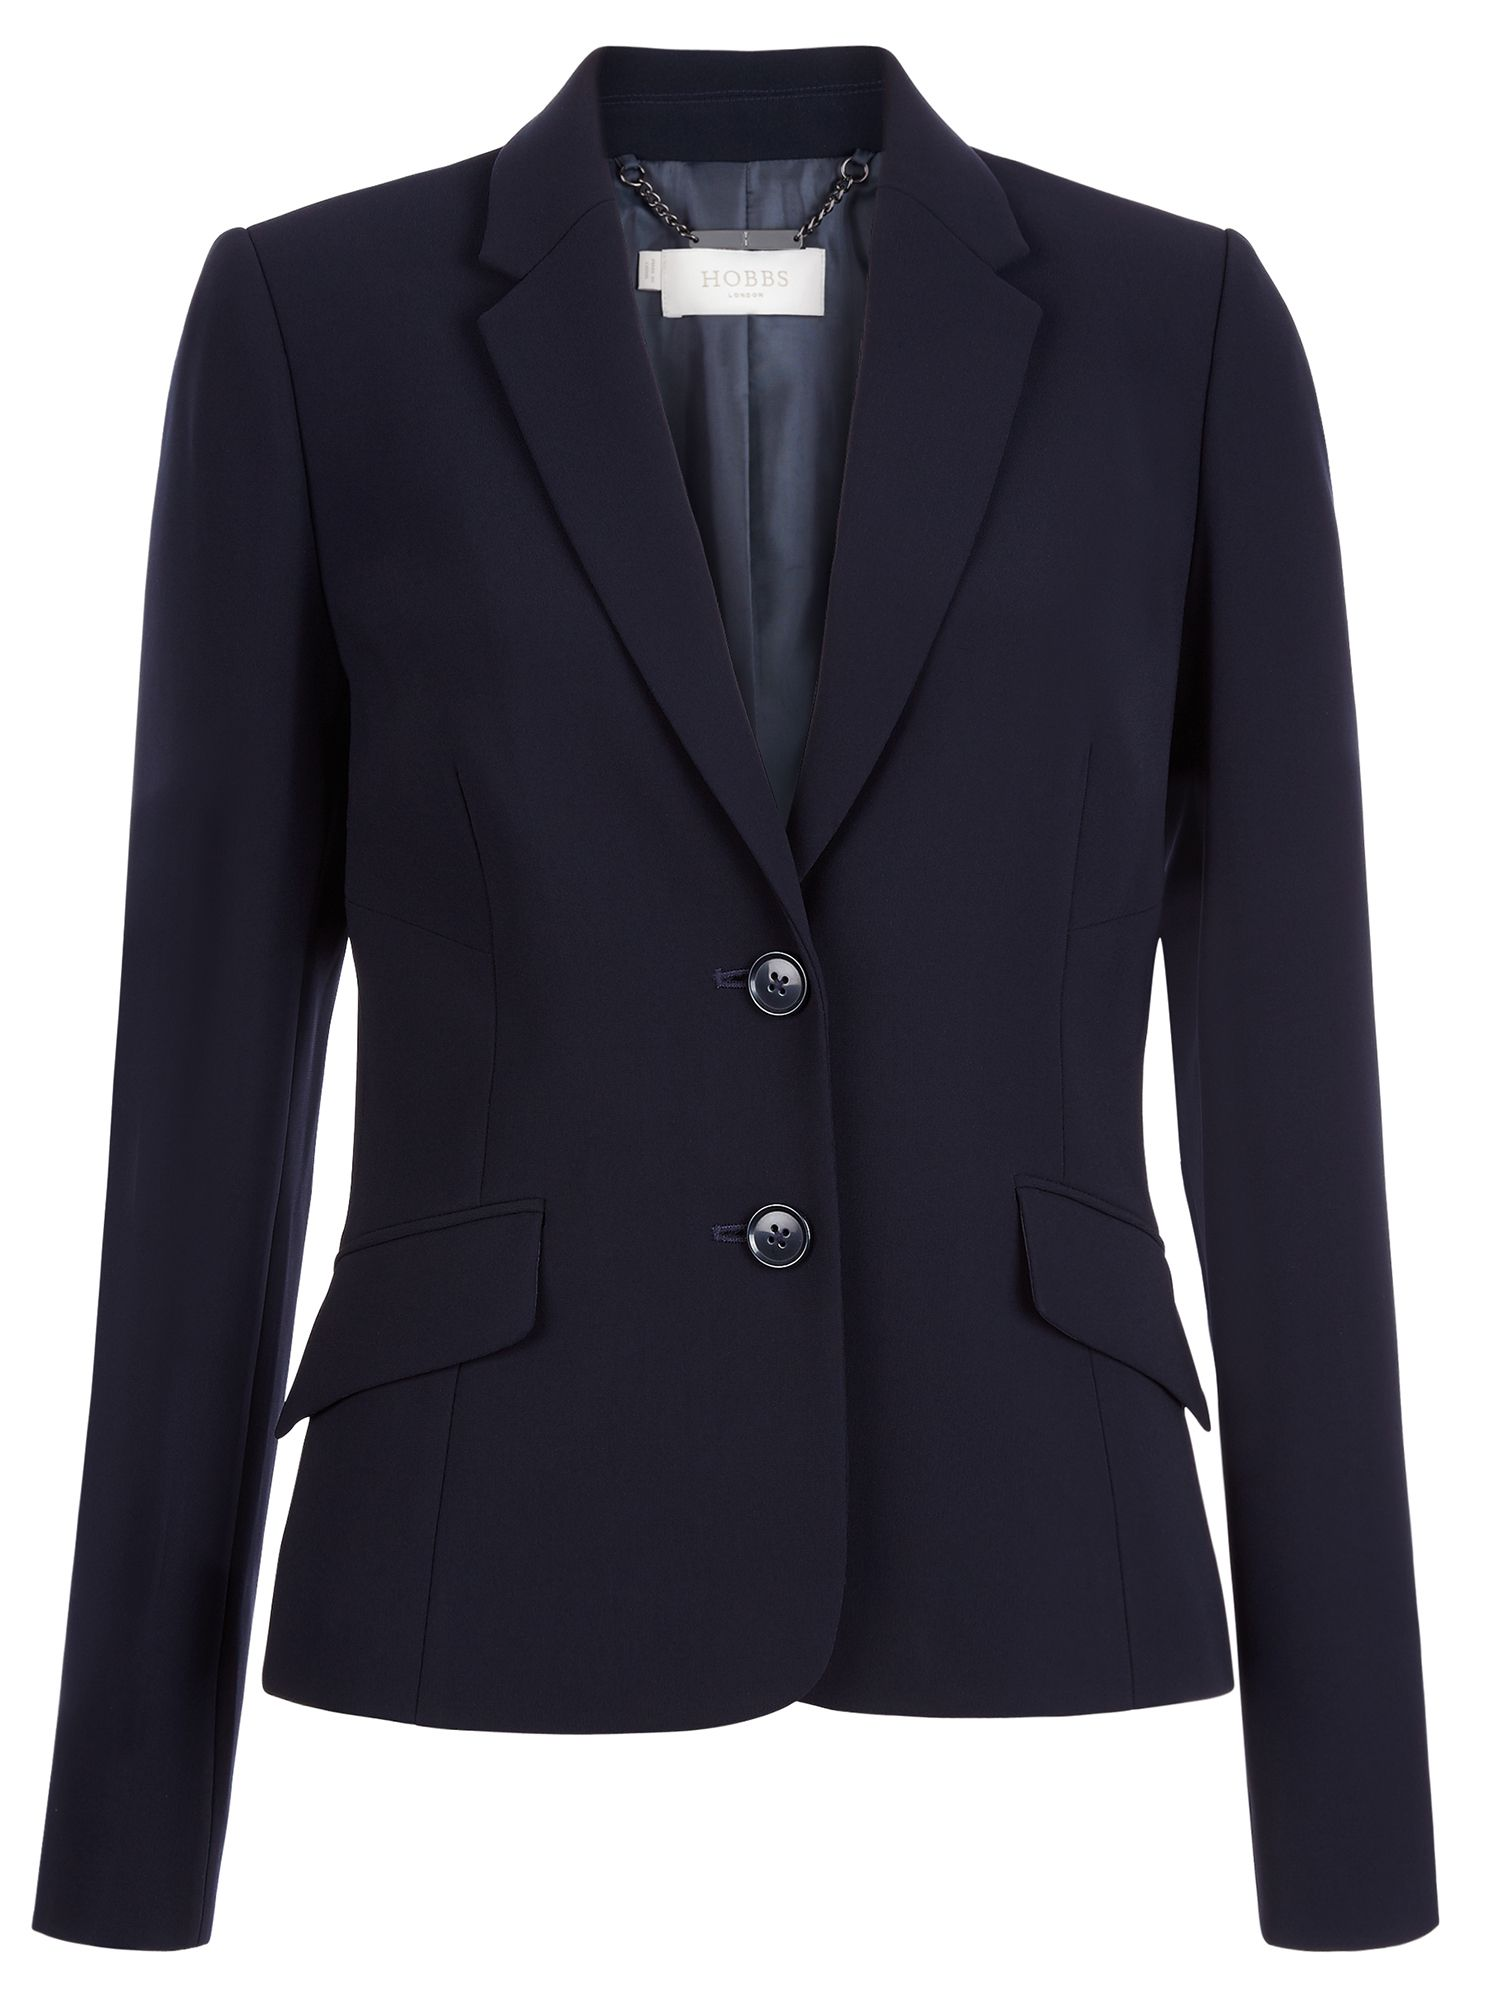 Hobbs Catherine Jacket, Blue